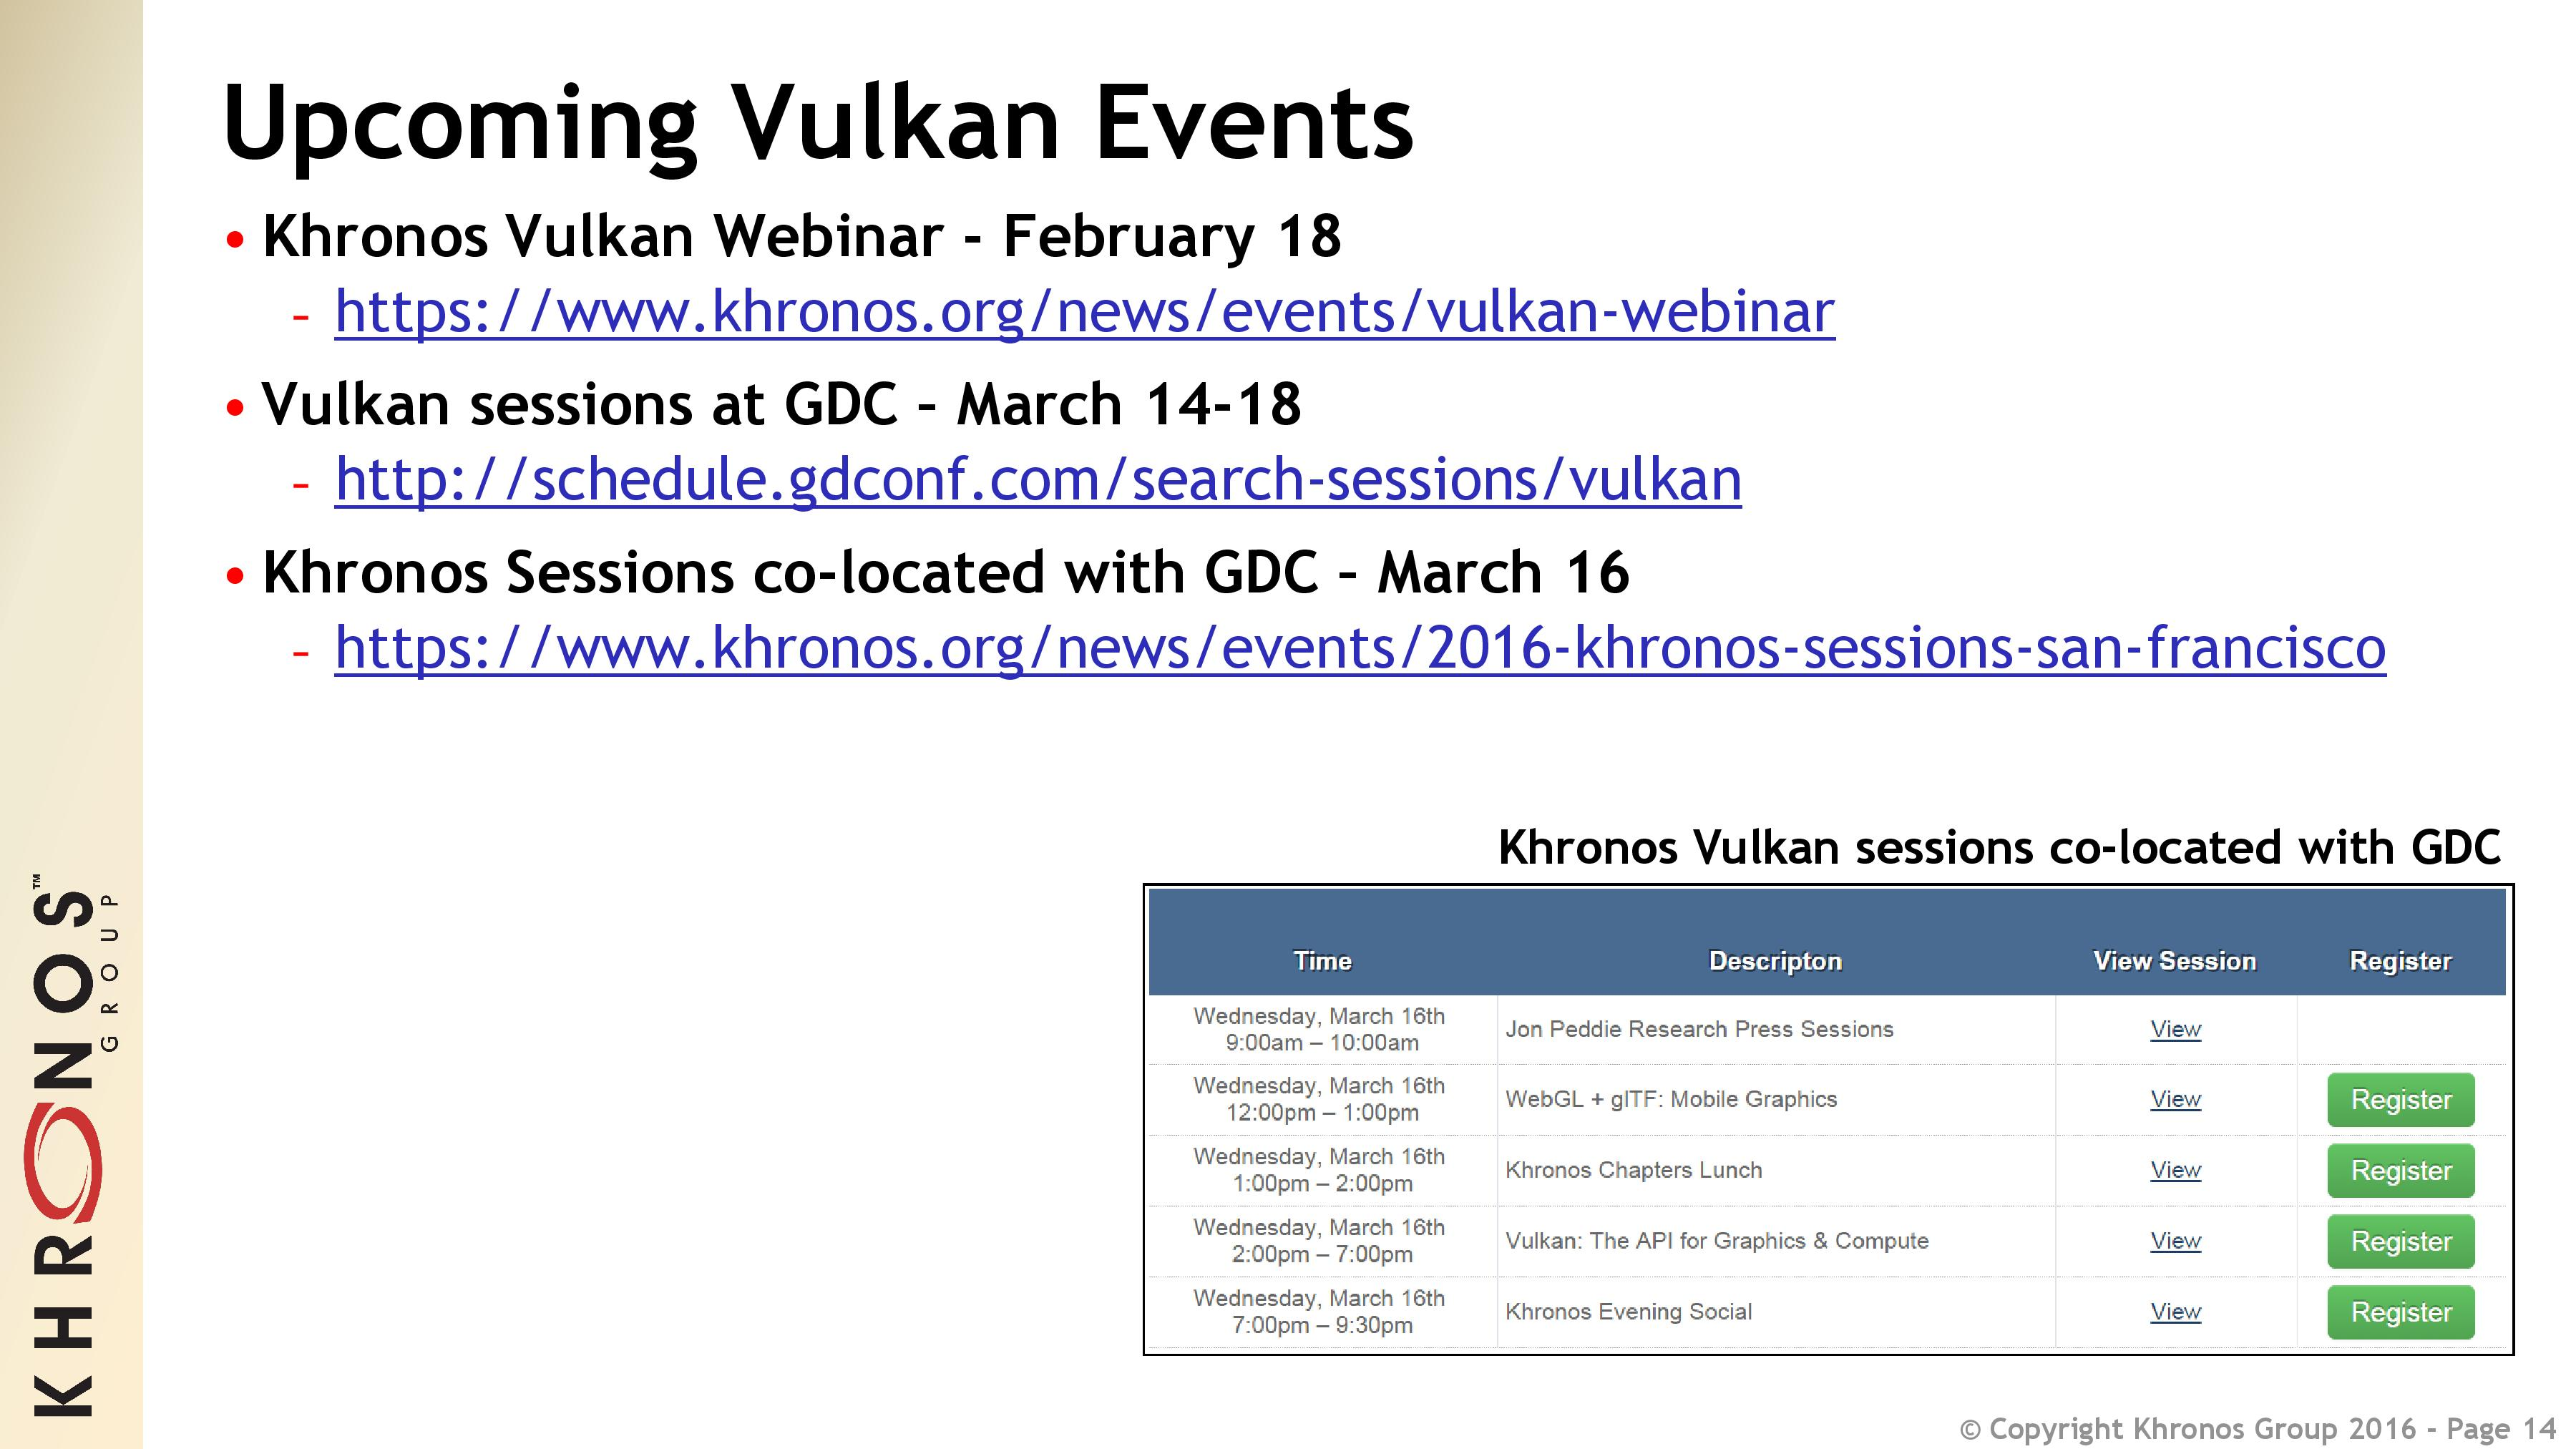 Vulkan 1 0 Specification Released: Drivers & Games Inbound